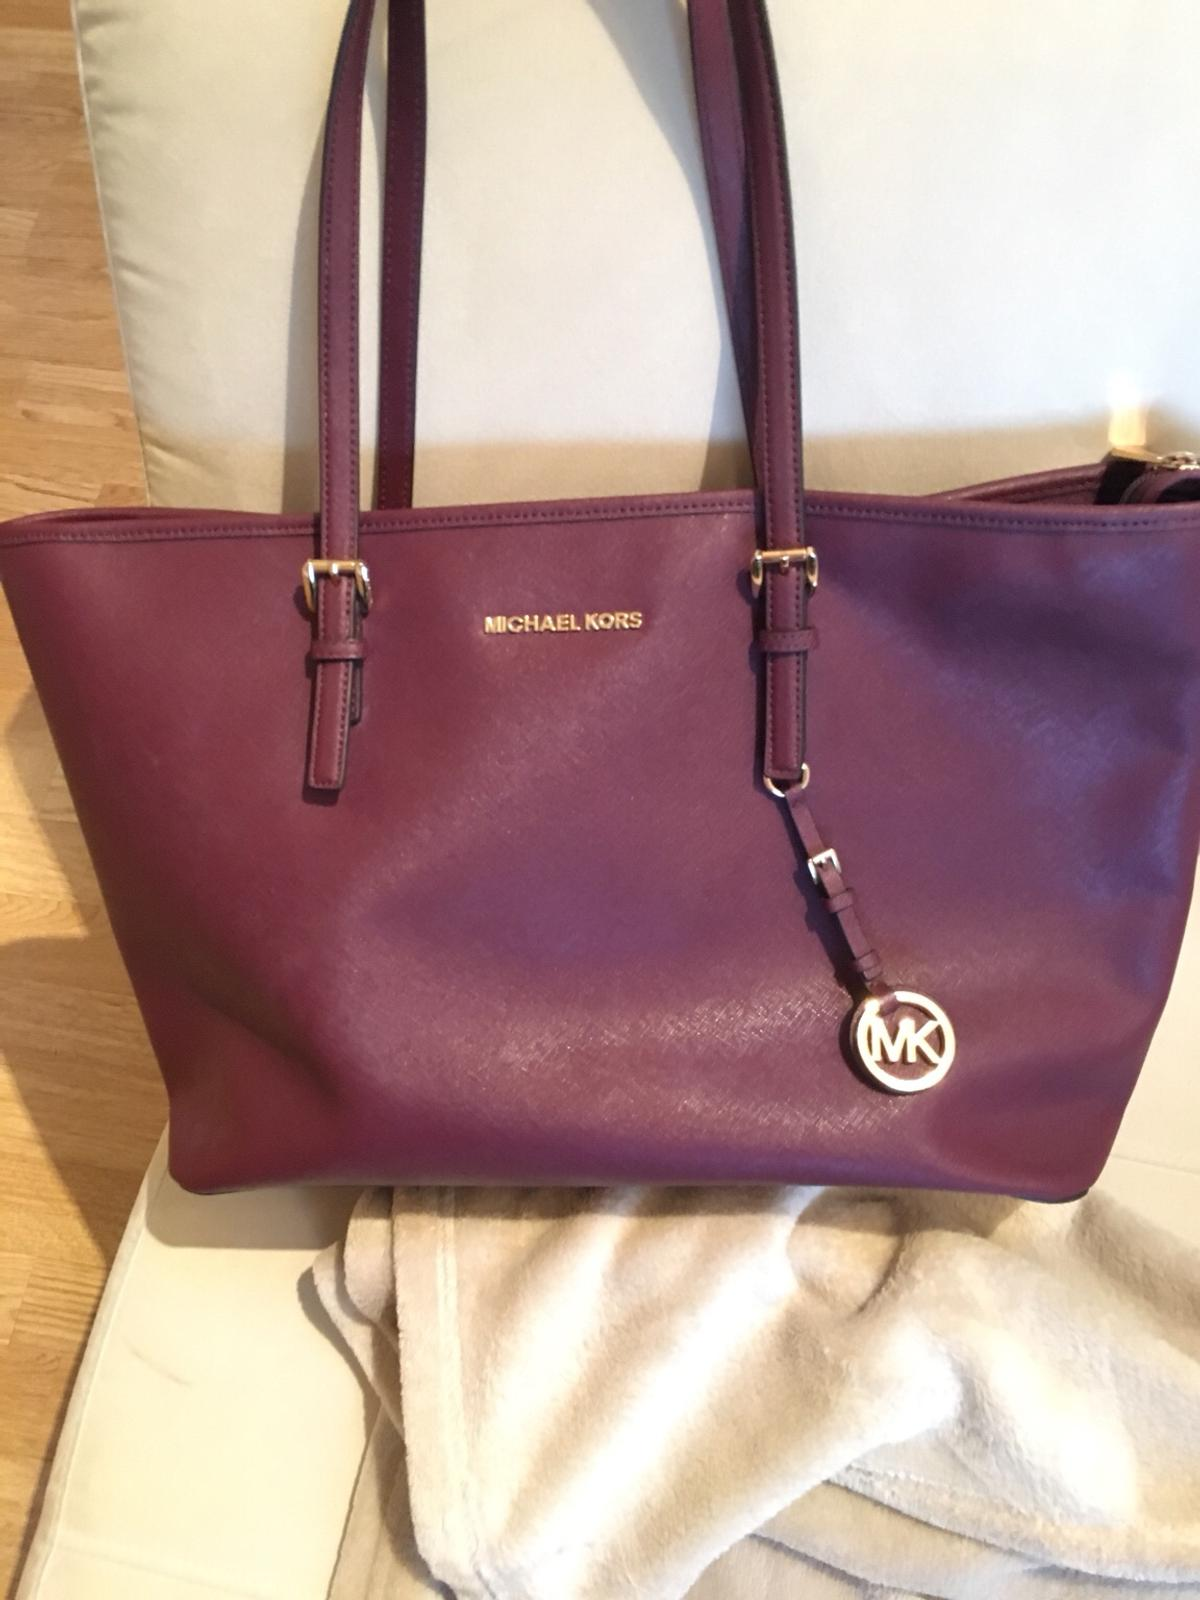 d3bbb0424965 Michael Kors Jet Set bag - Plum leather in NW3 London for £100.00 ...